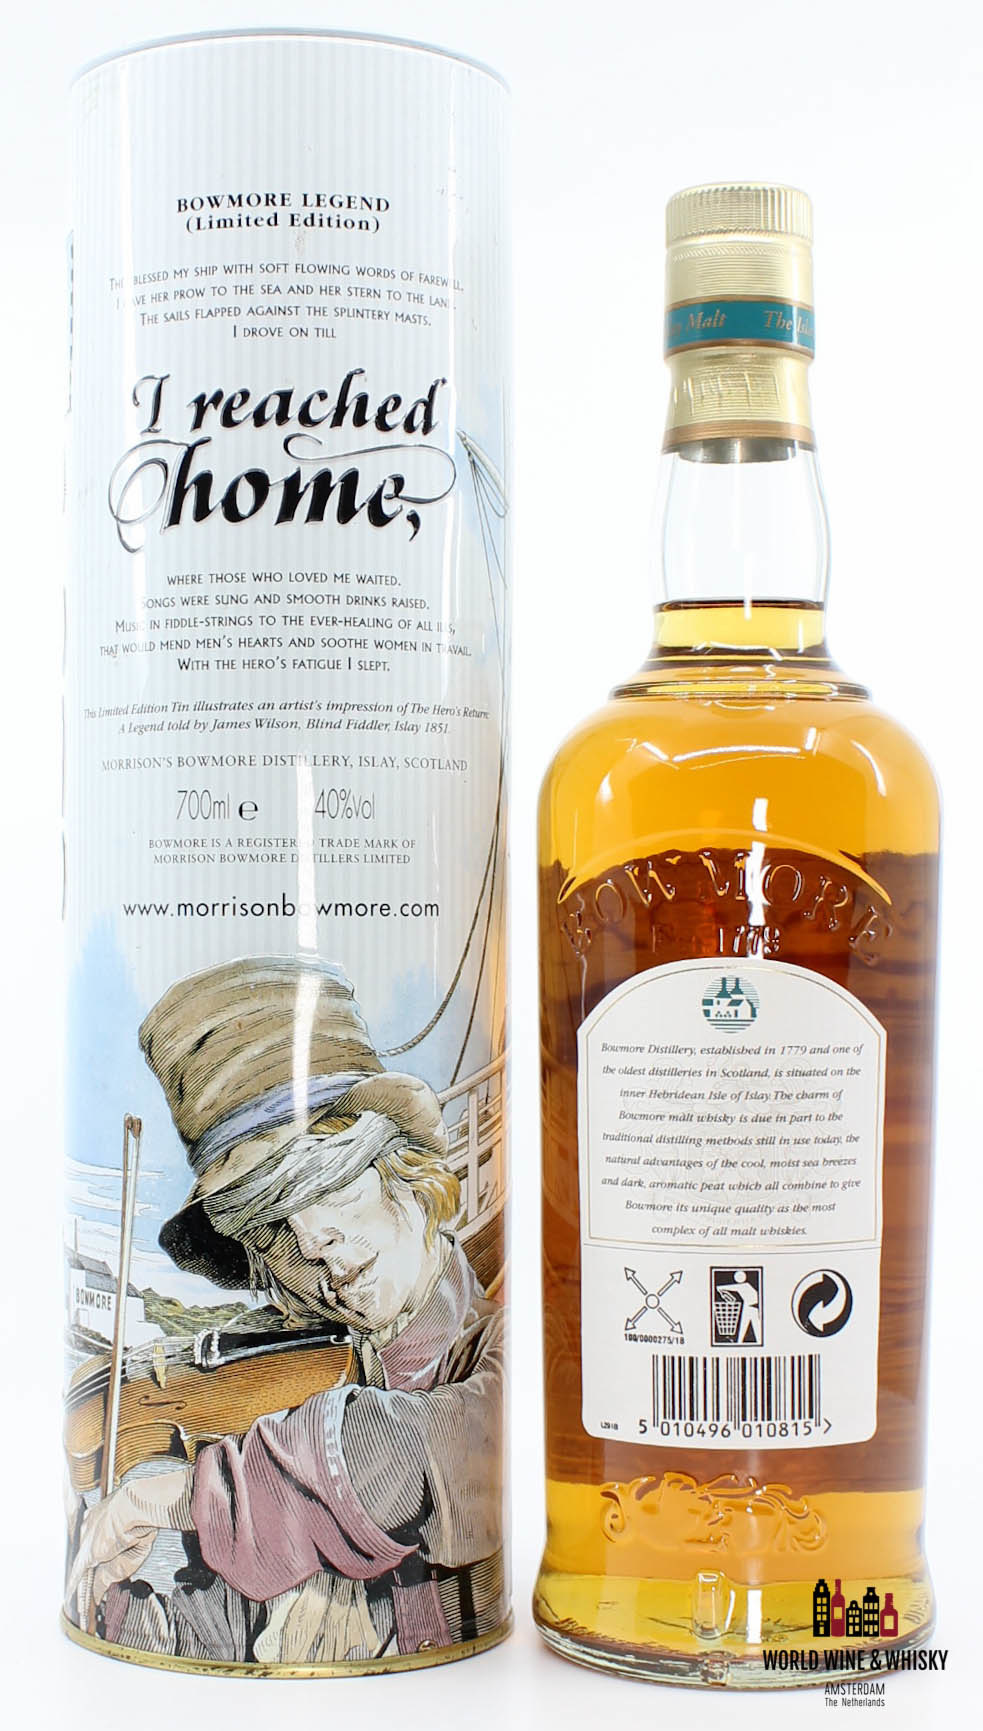 Bowmore Bowmore Legend - The Hero's Return 2002 40%